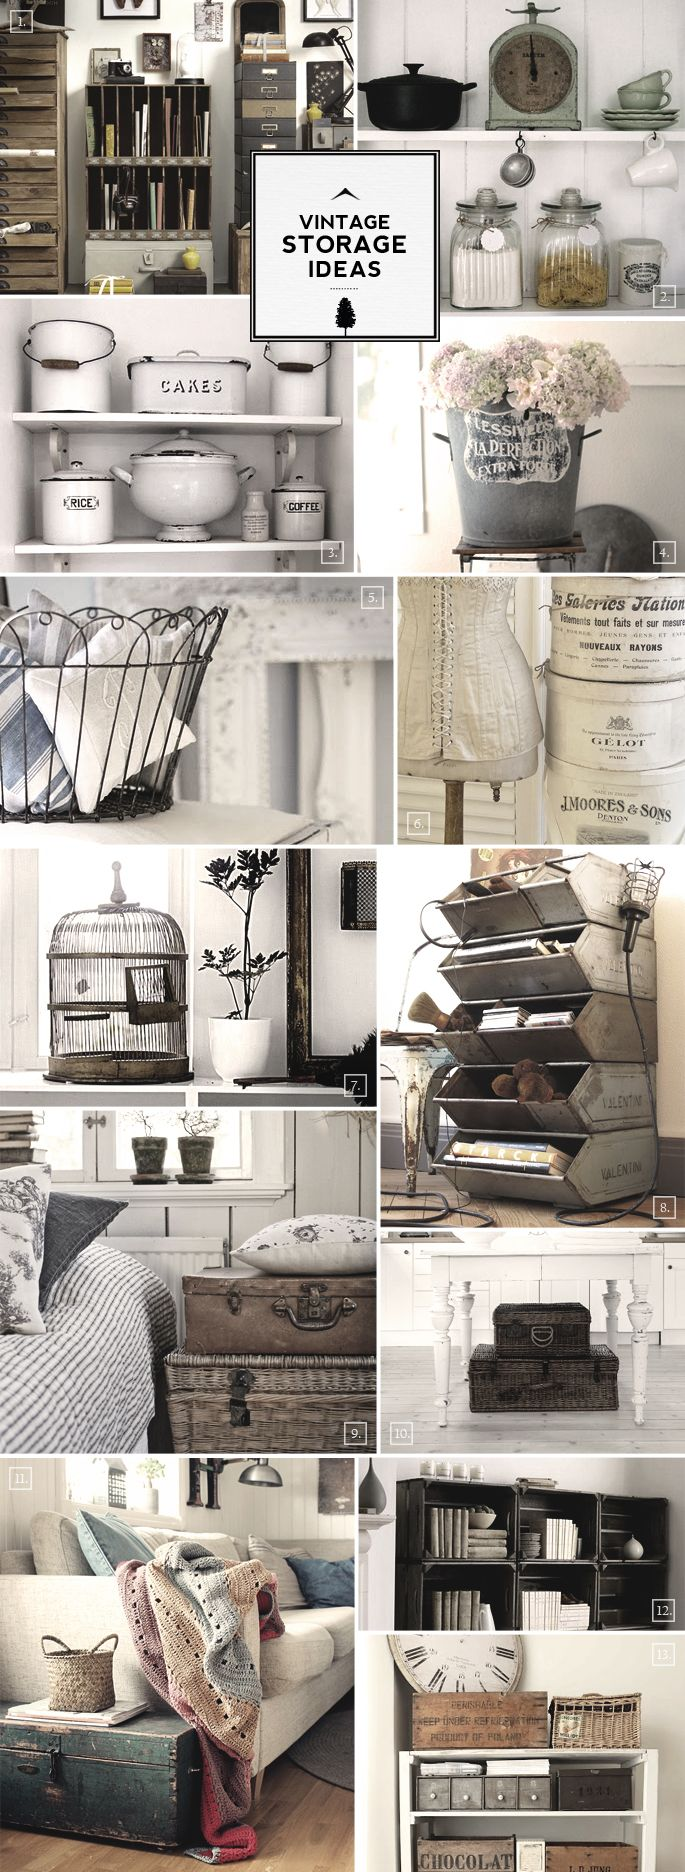 Vintage storage ideas - oh wow if my house was ever like this... <3